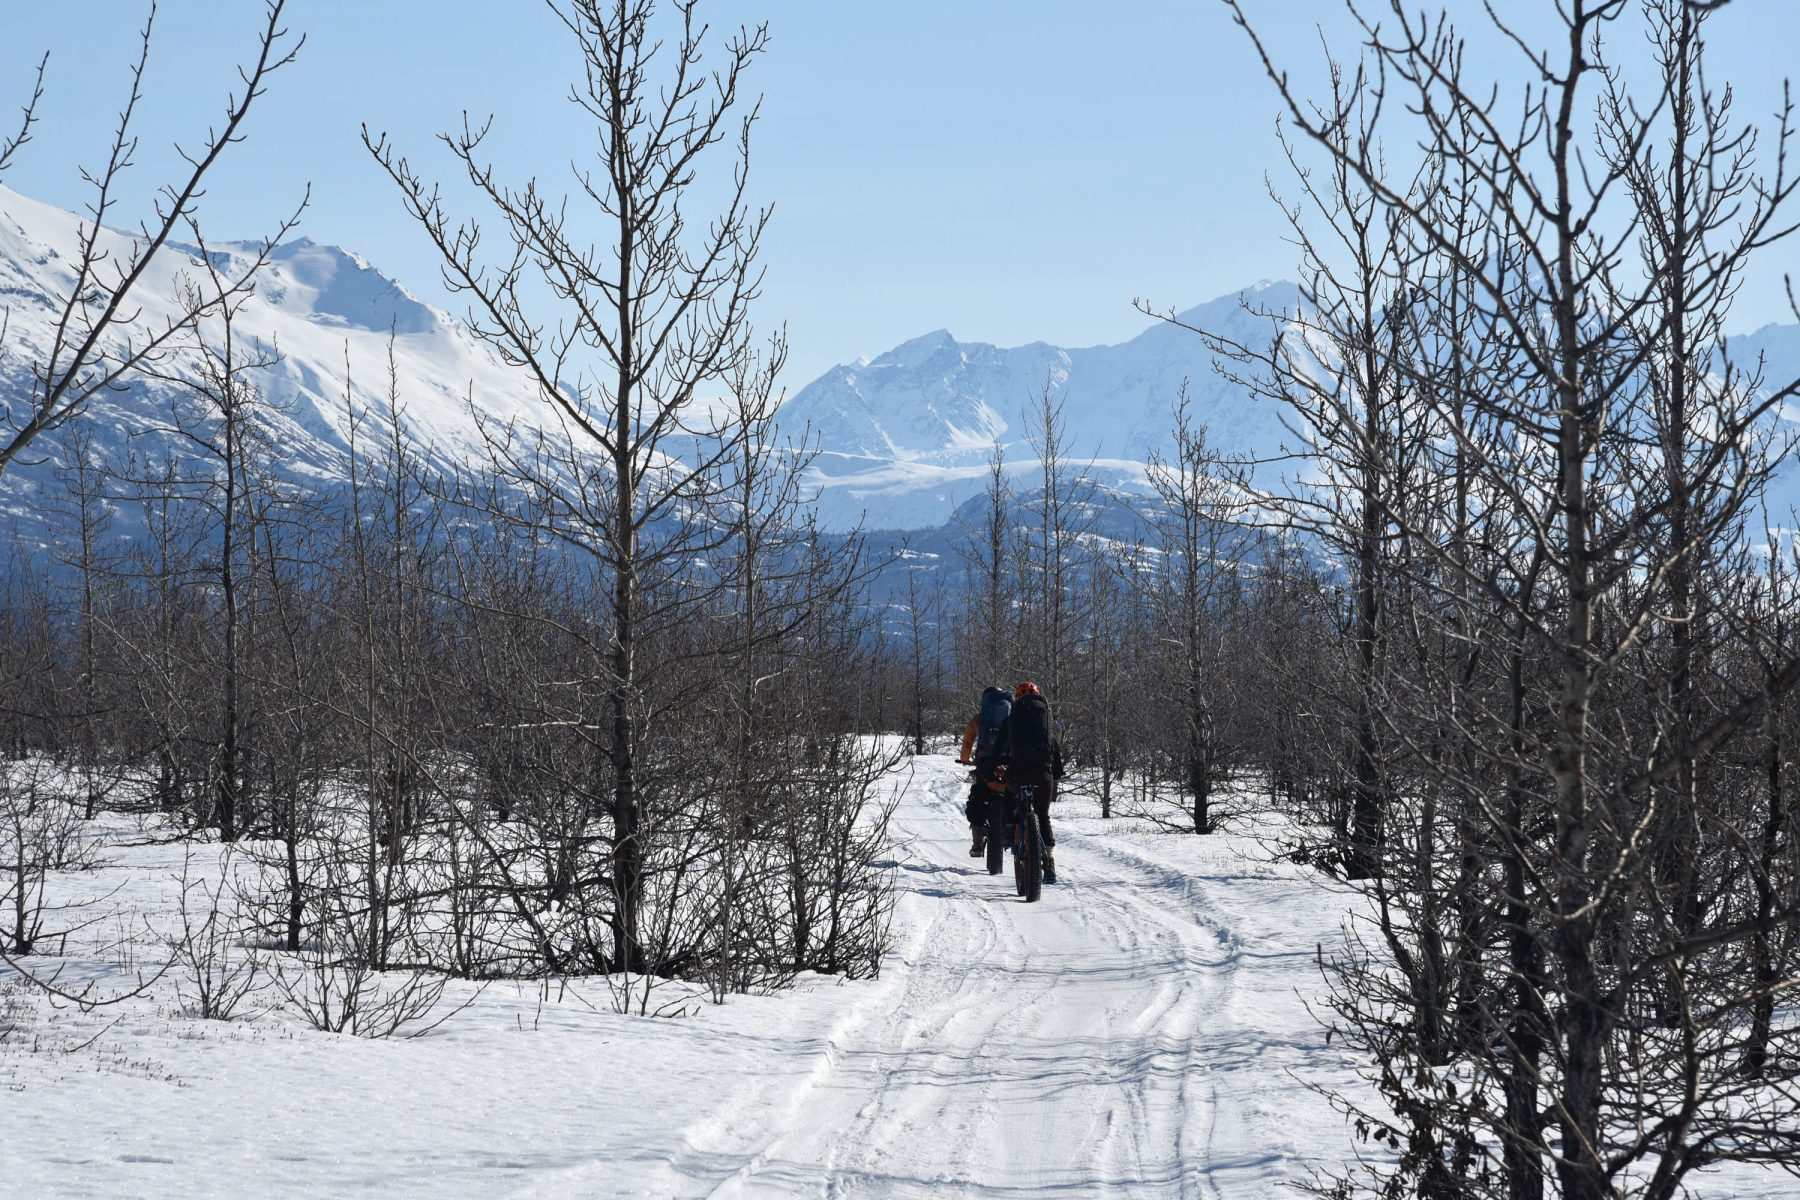 Cori Graves and Devin Kelly biking to Knik Glacier